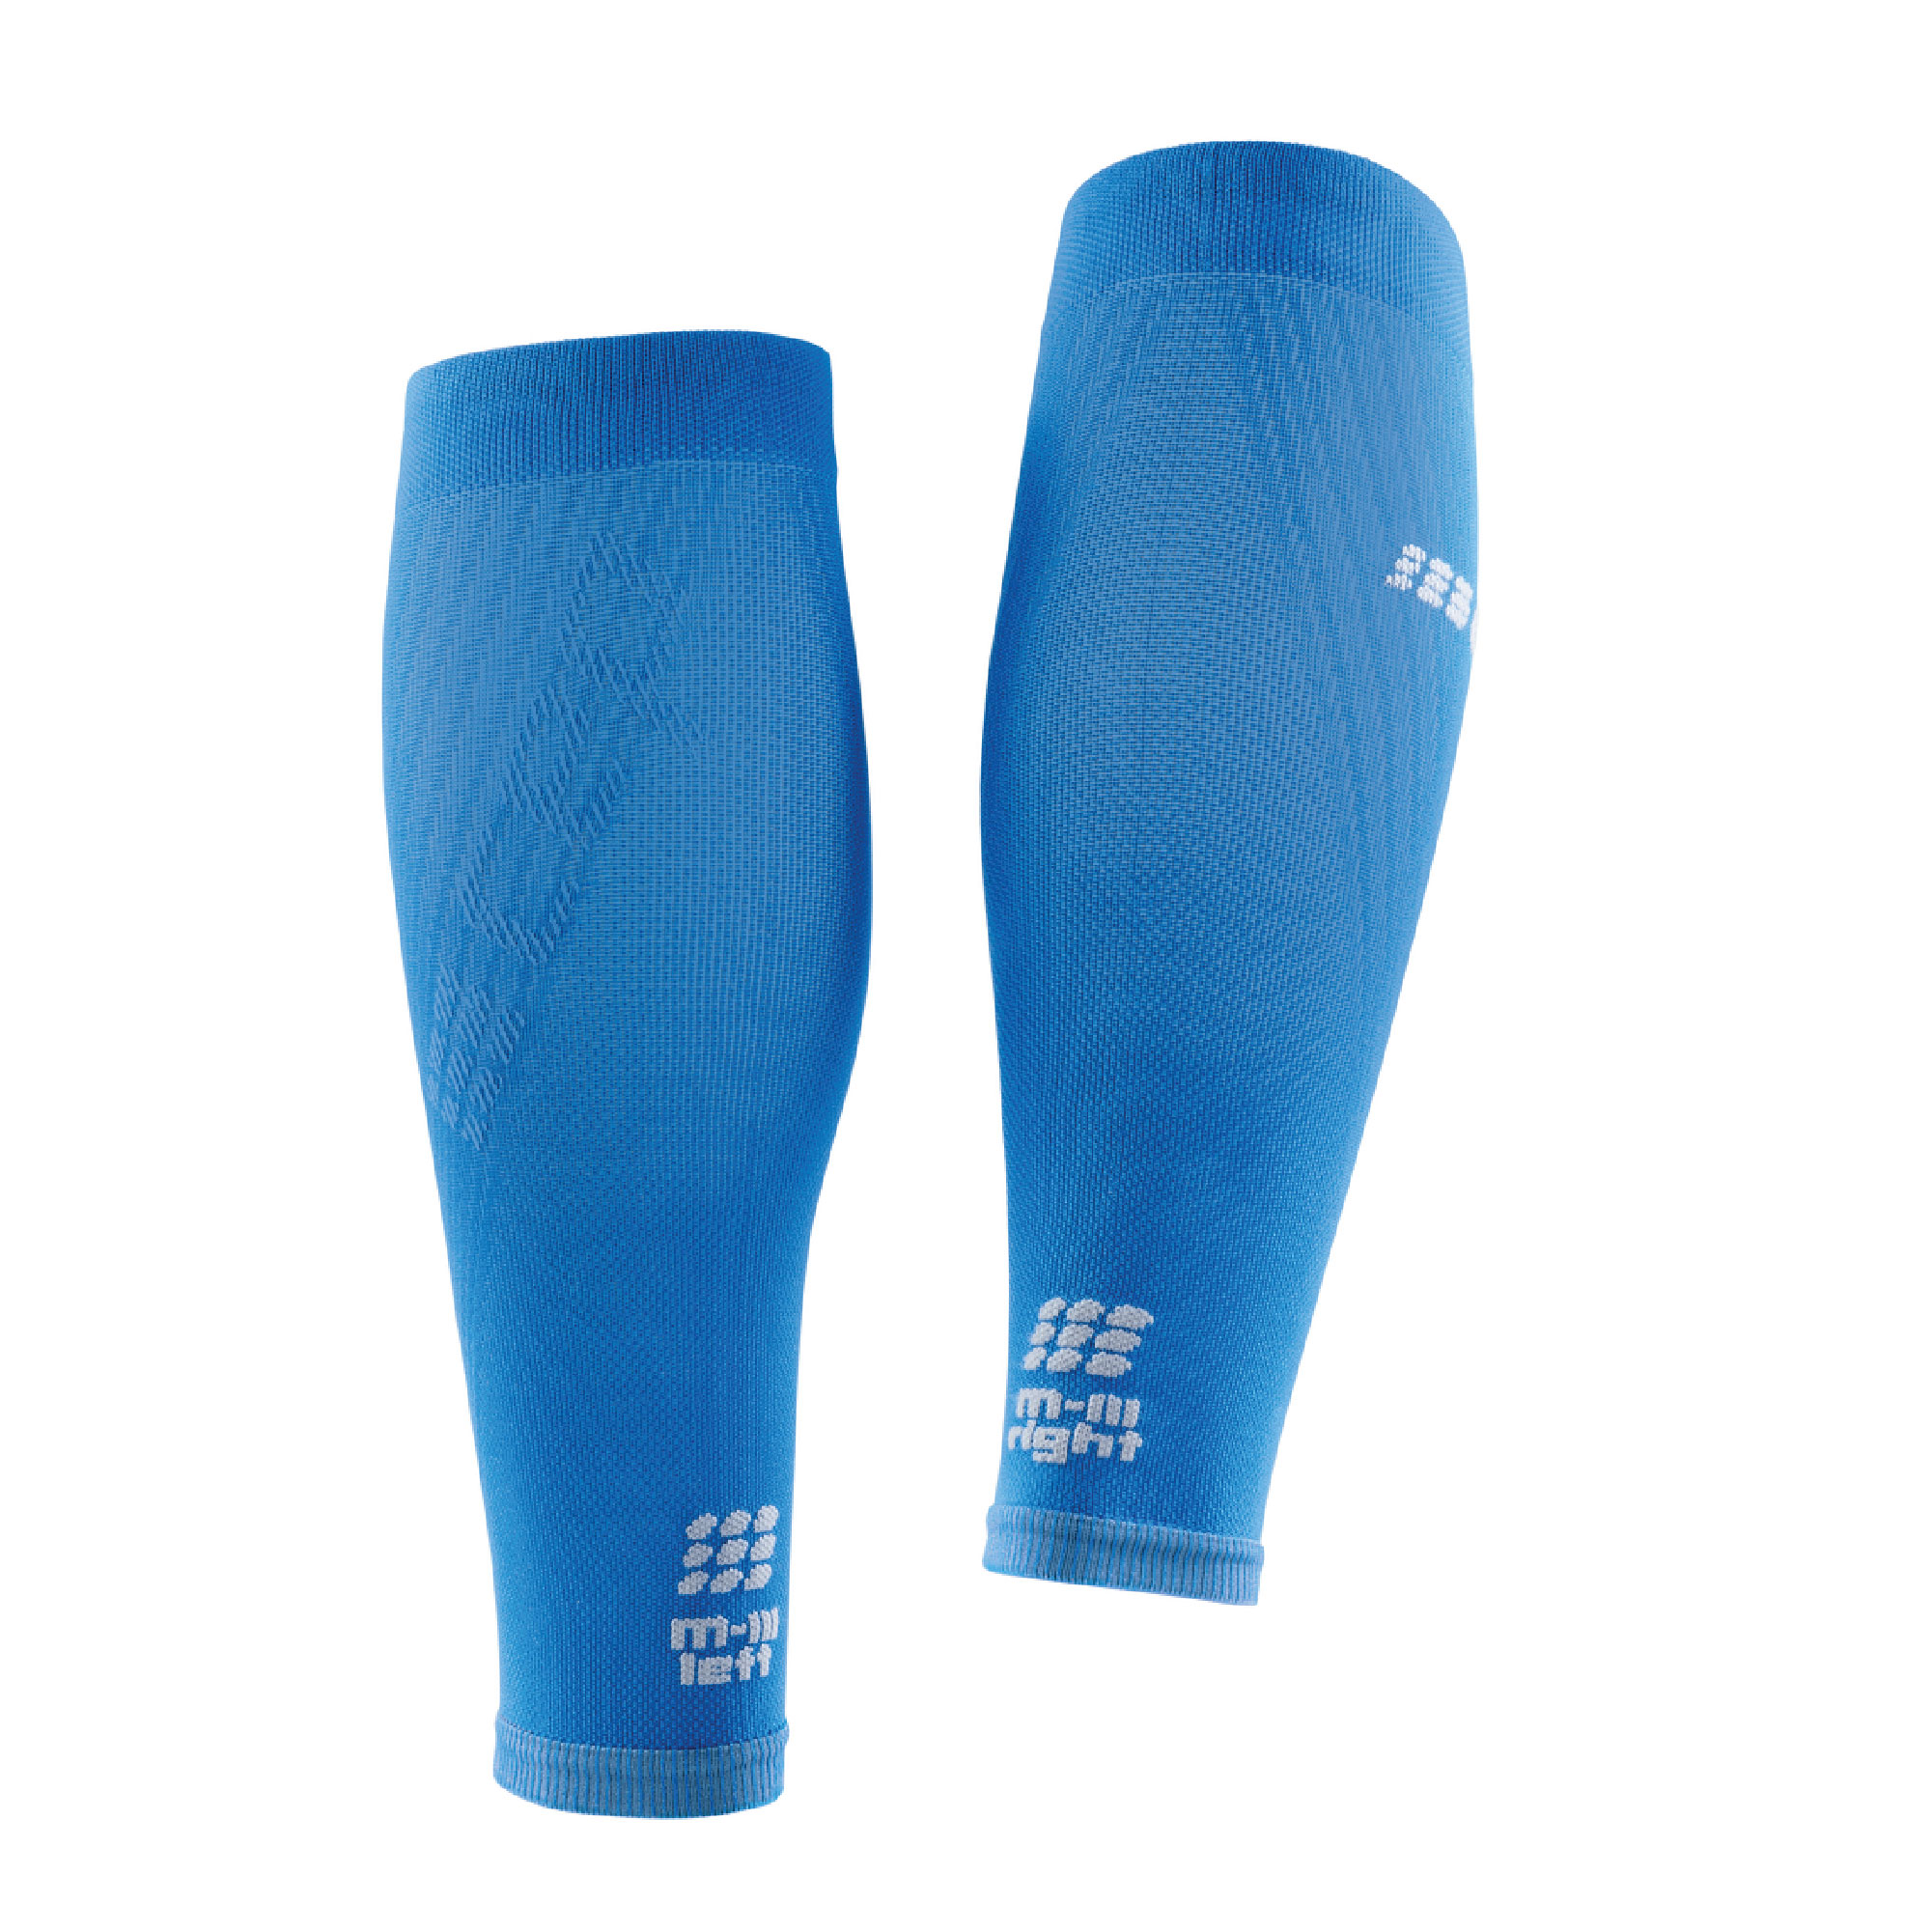 ULTRALIGHT PRO CALF SLEEVES | WOMEN